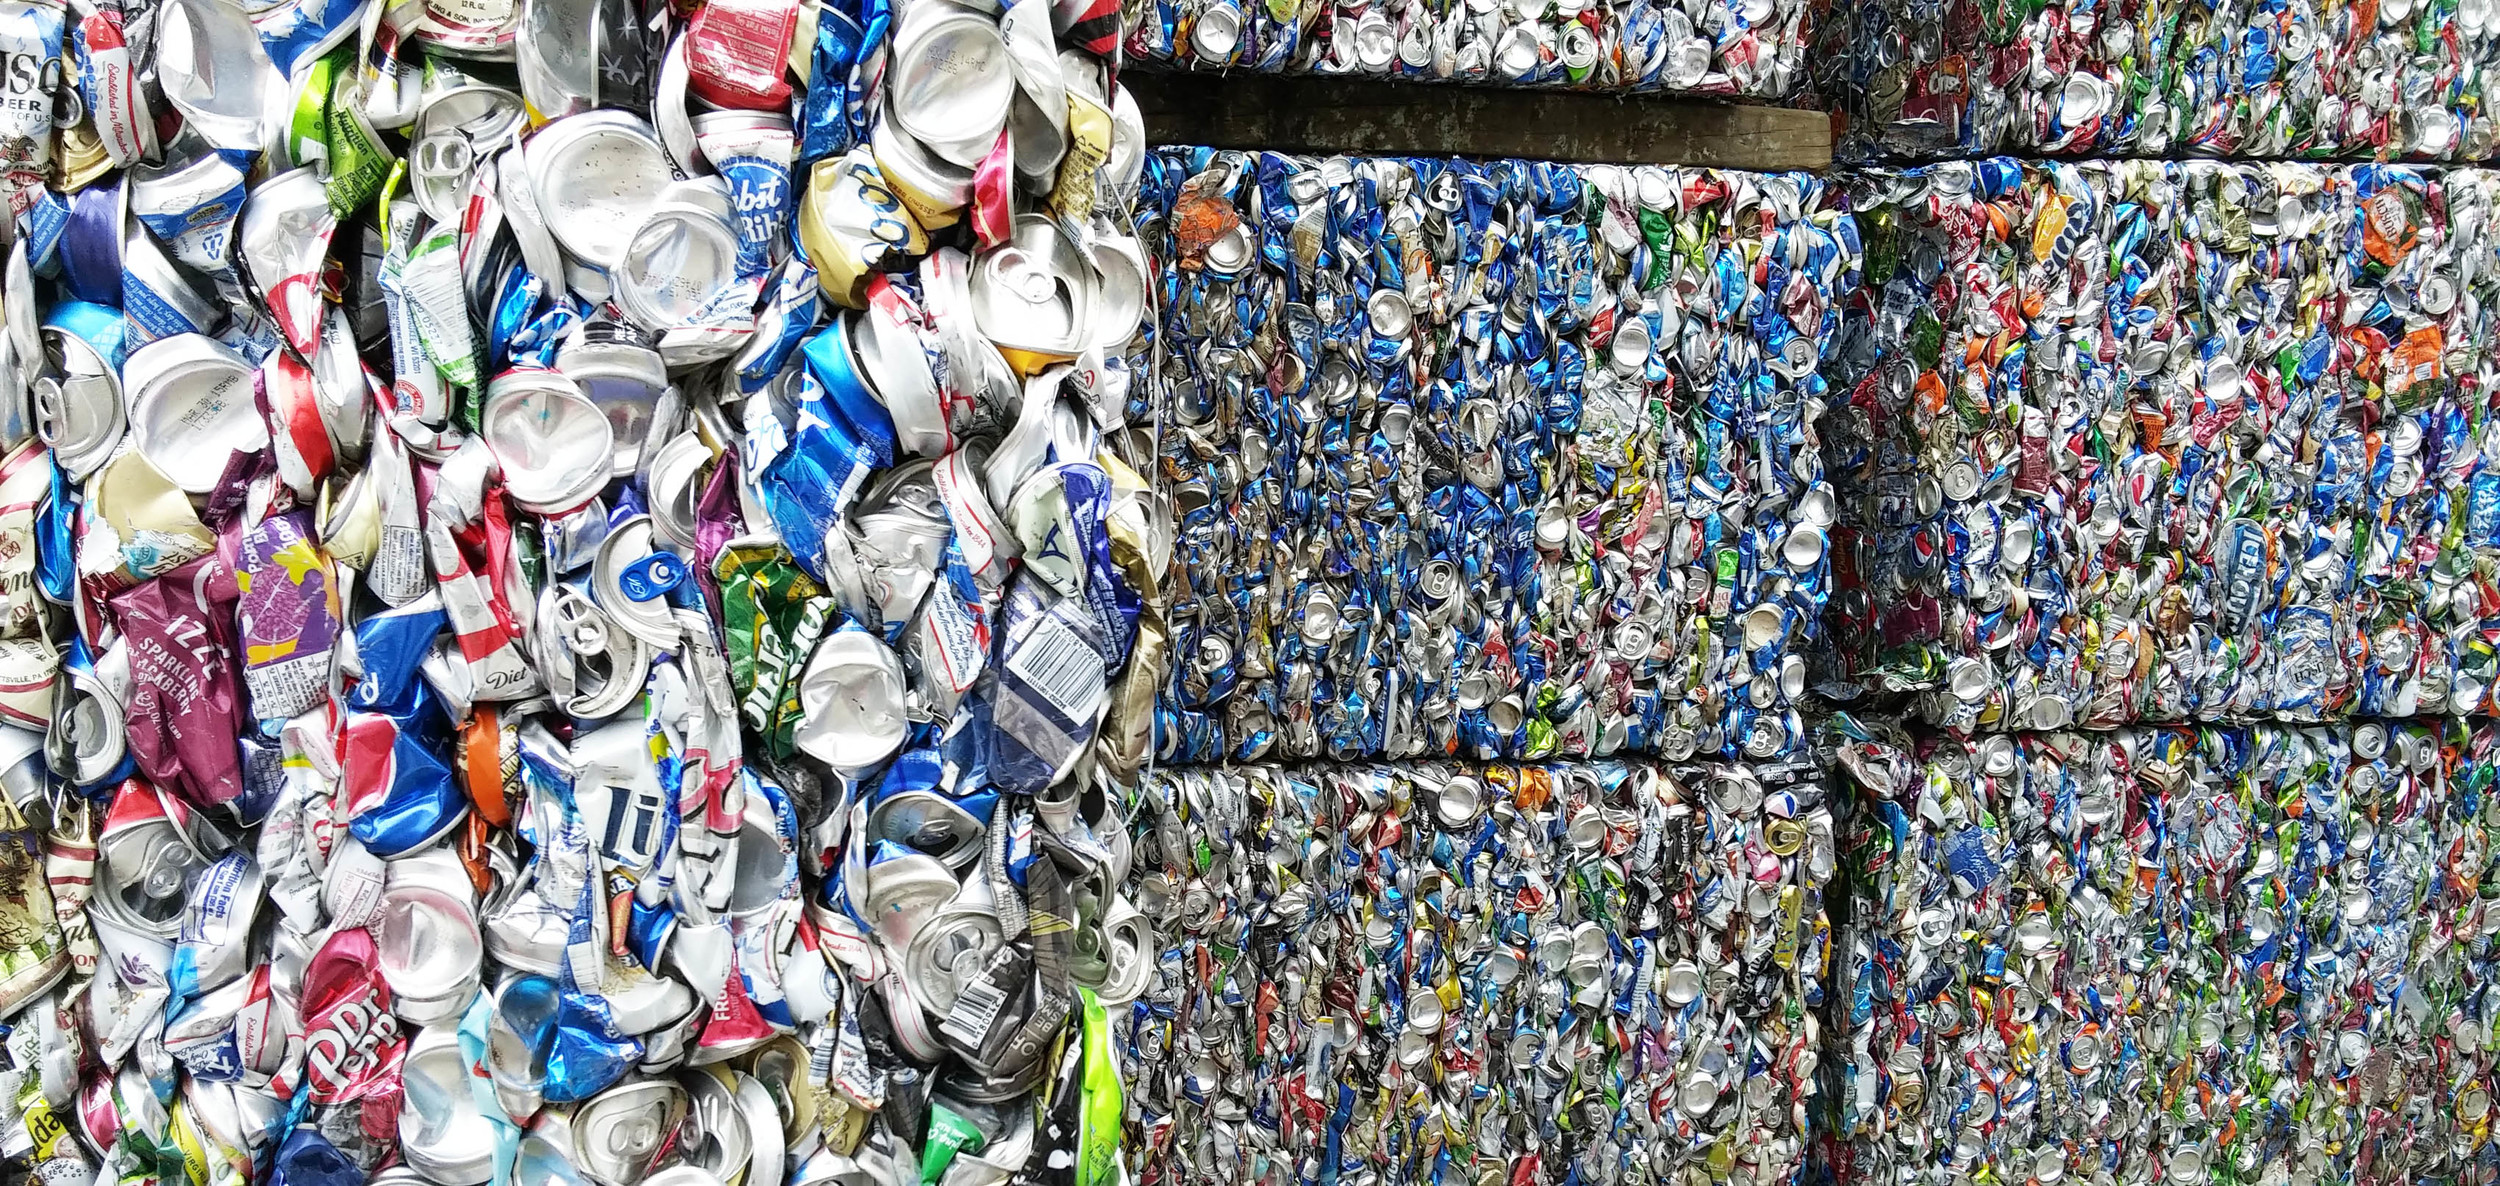 This place is also a recycling center for Nelson County